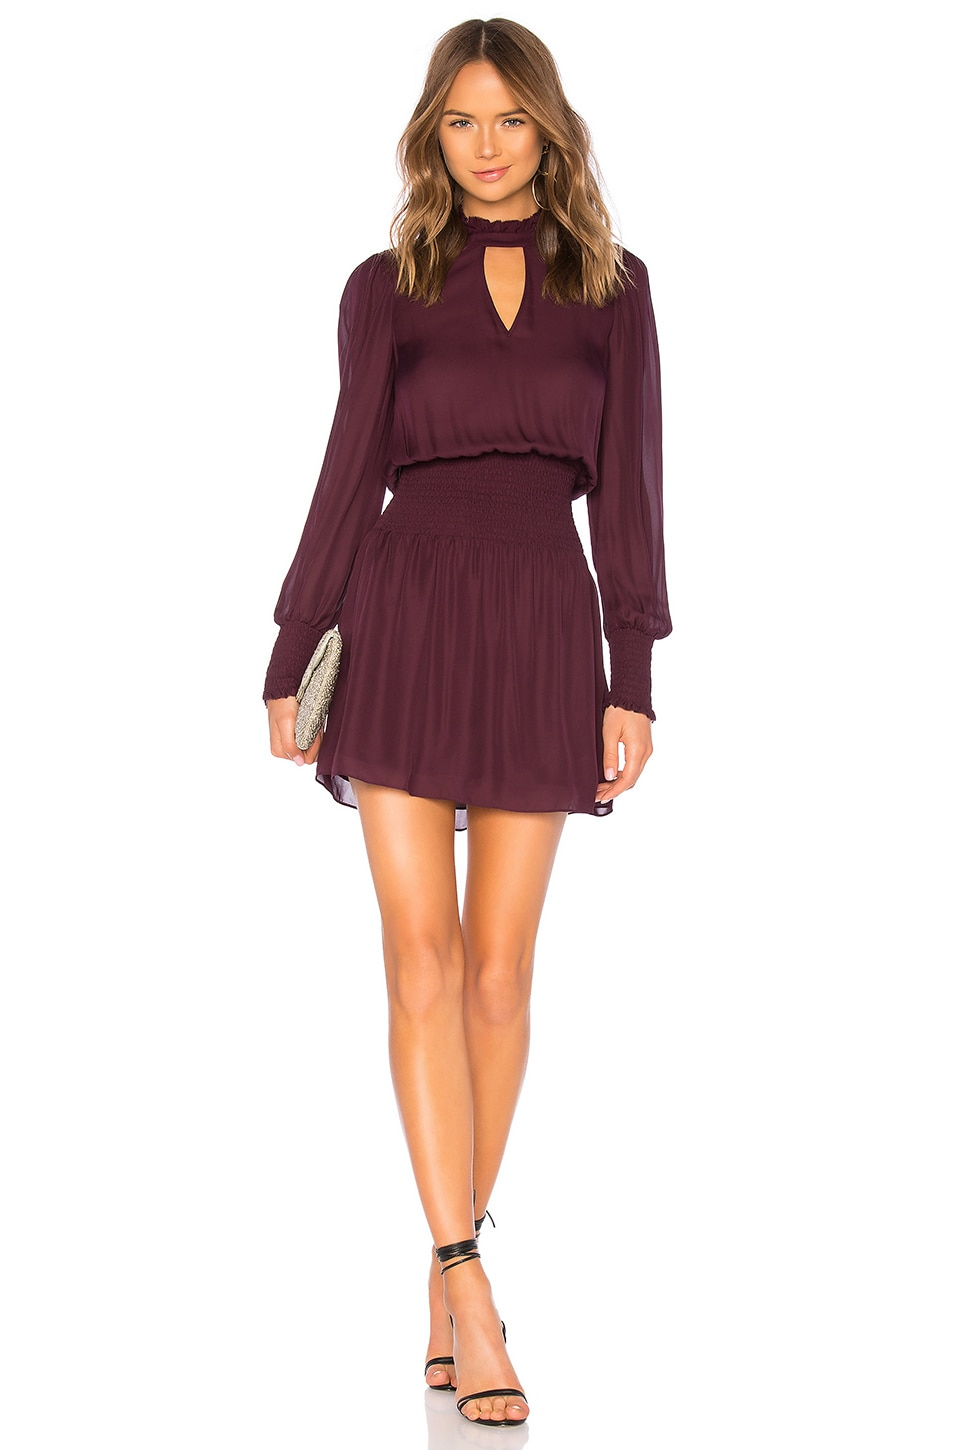 Parker Robyn Dress in Cordovan